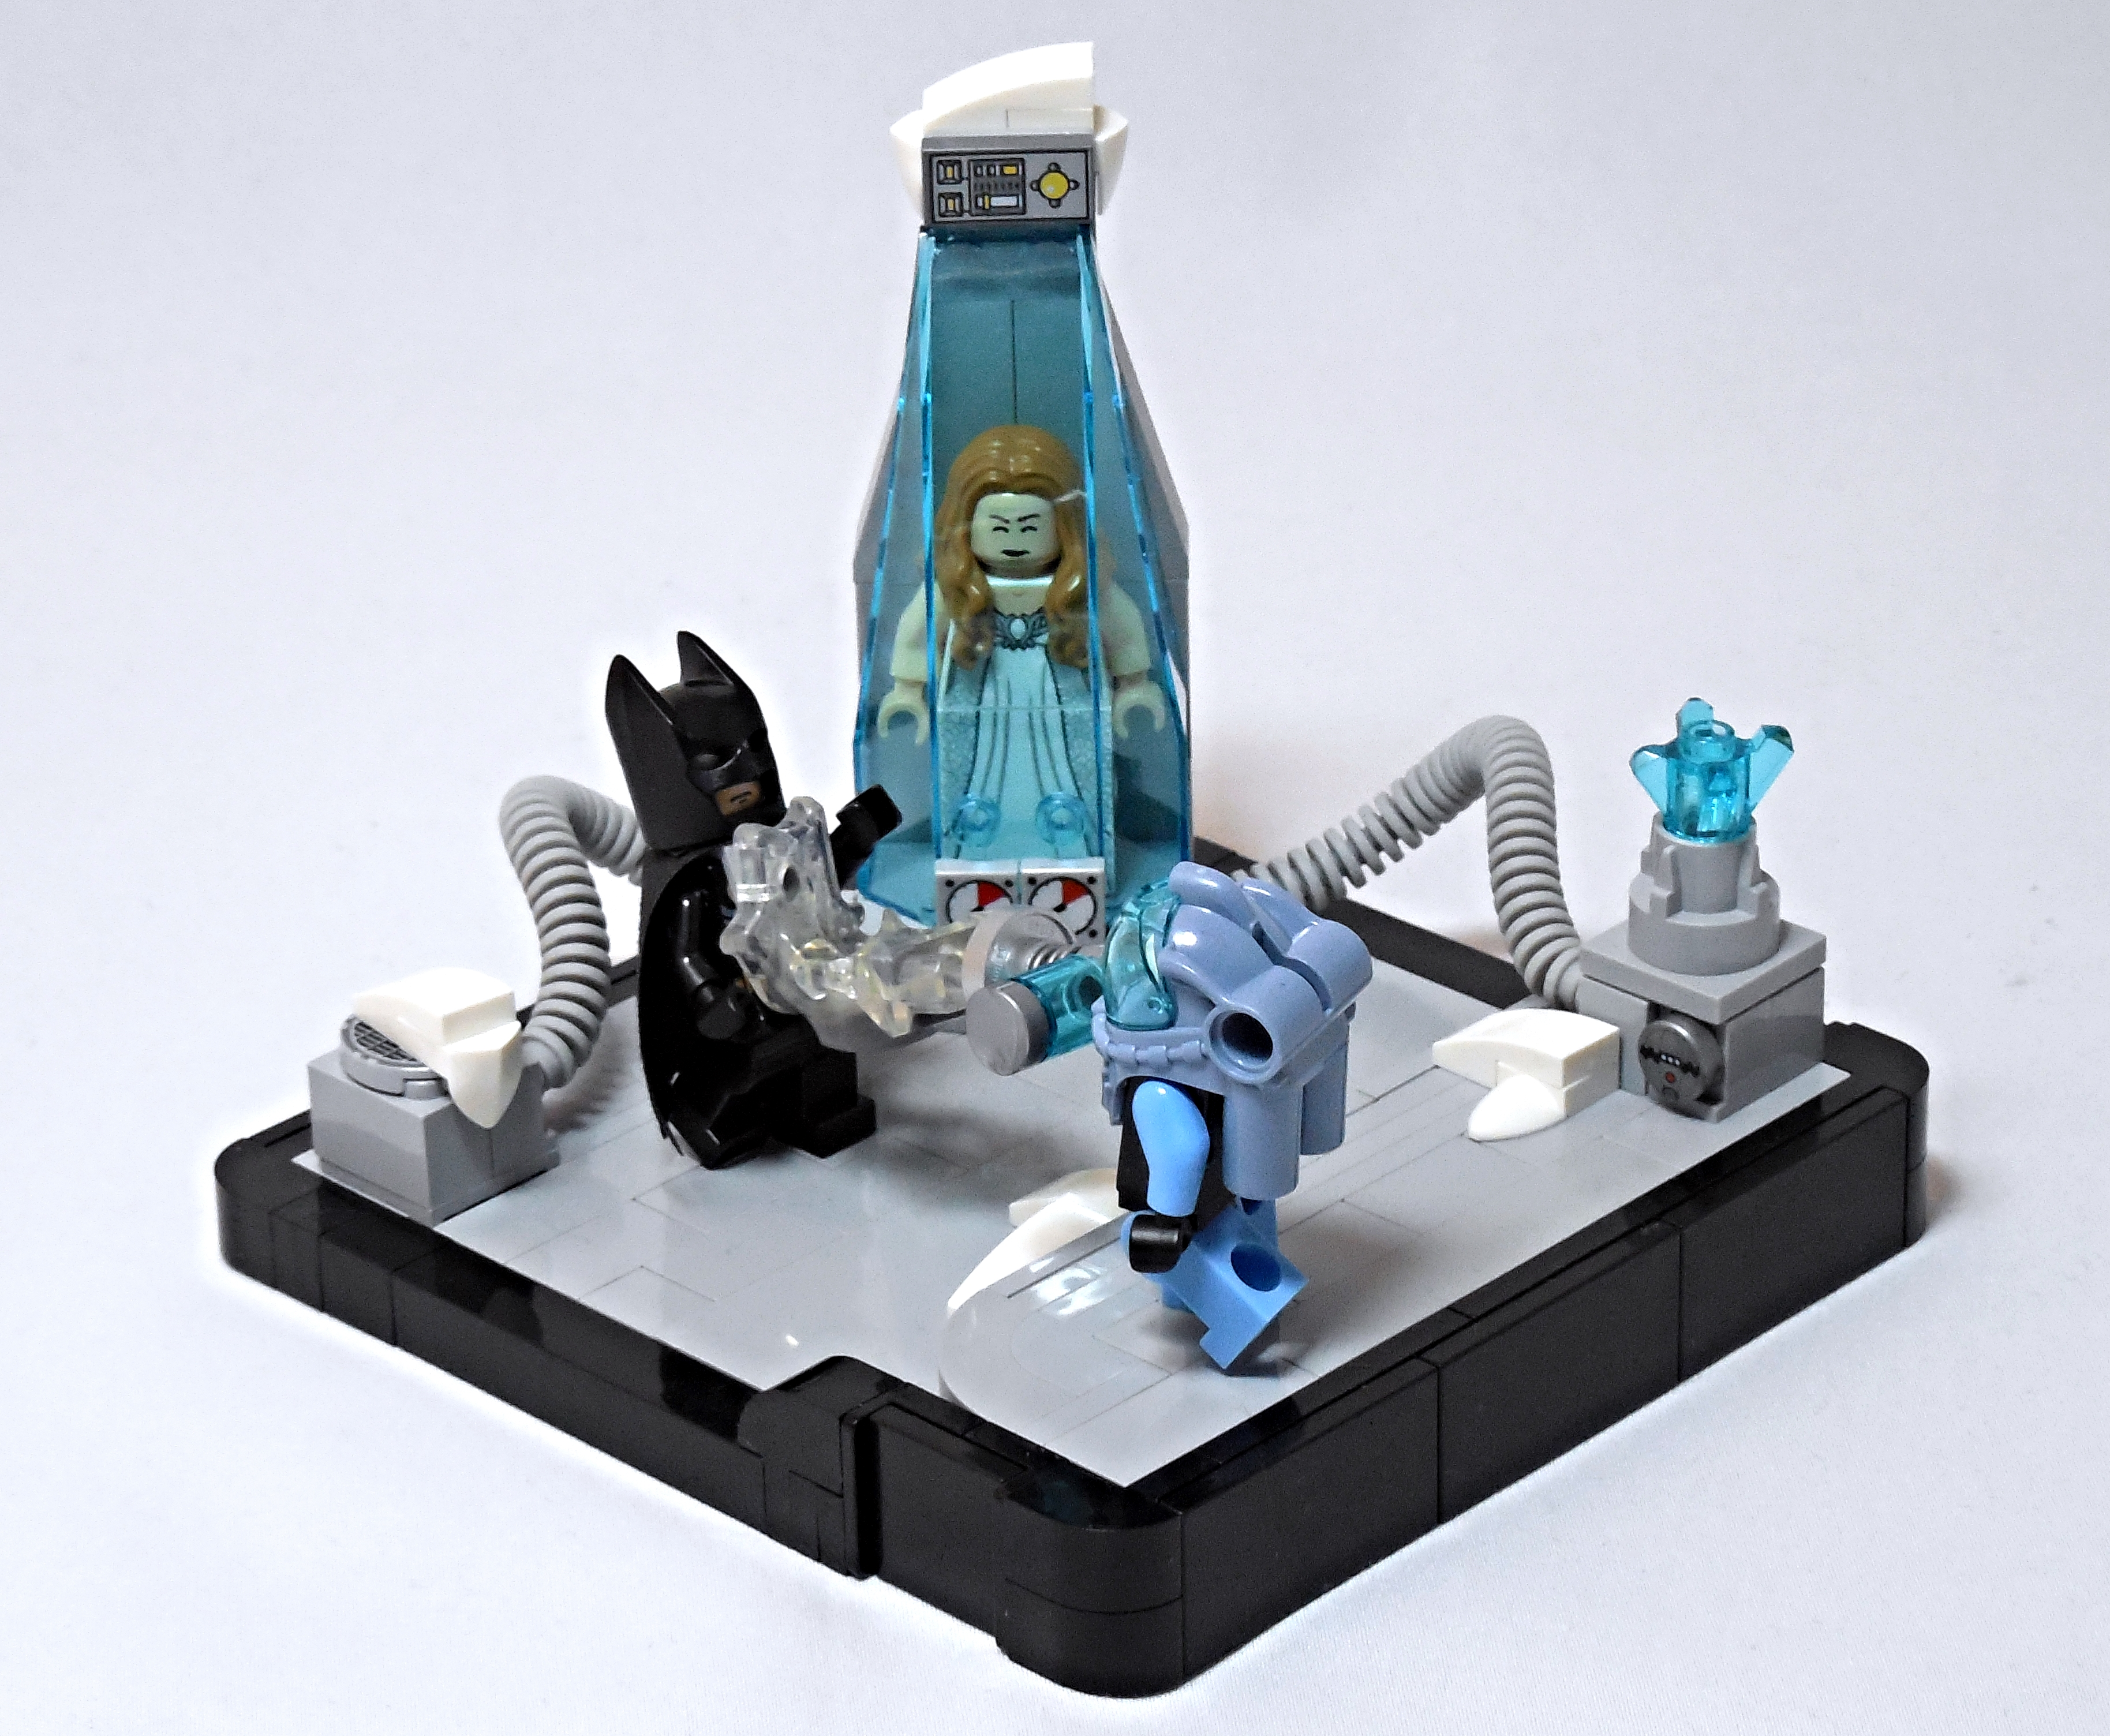 LEGO® MOC by Vitreolum: Allow me to break the ice!